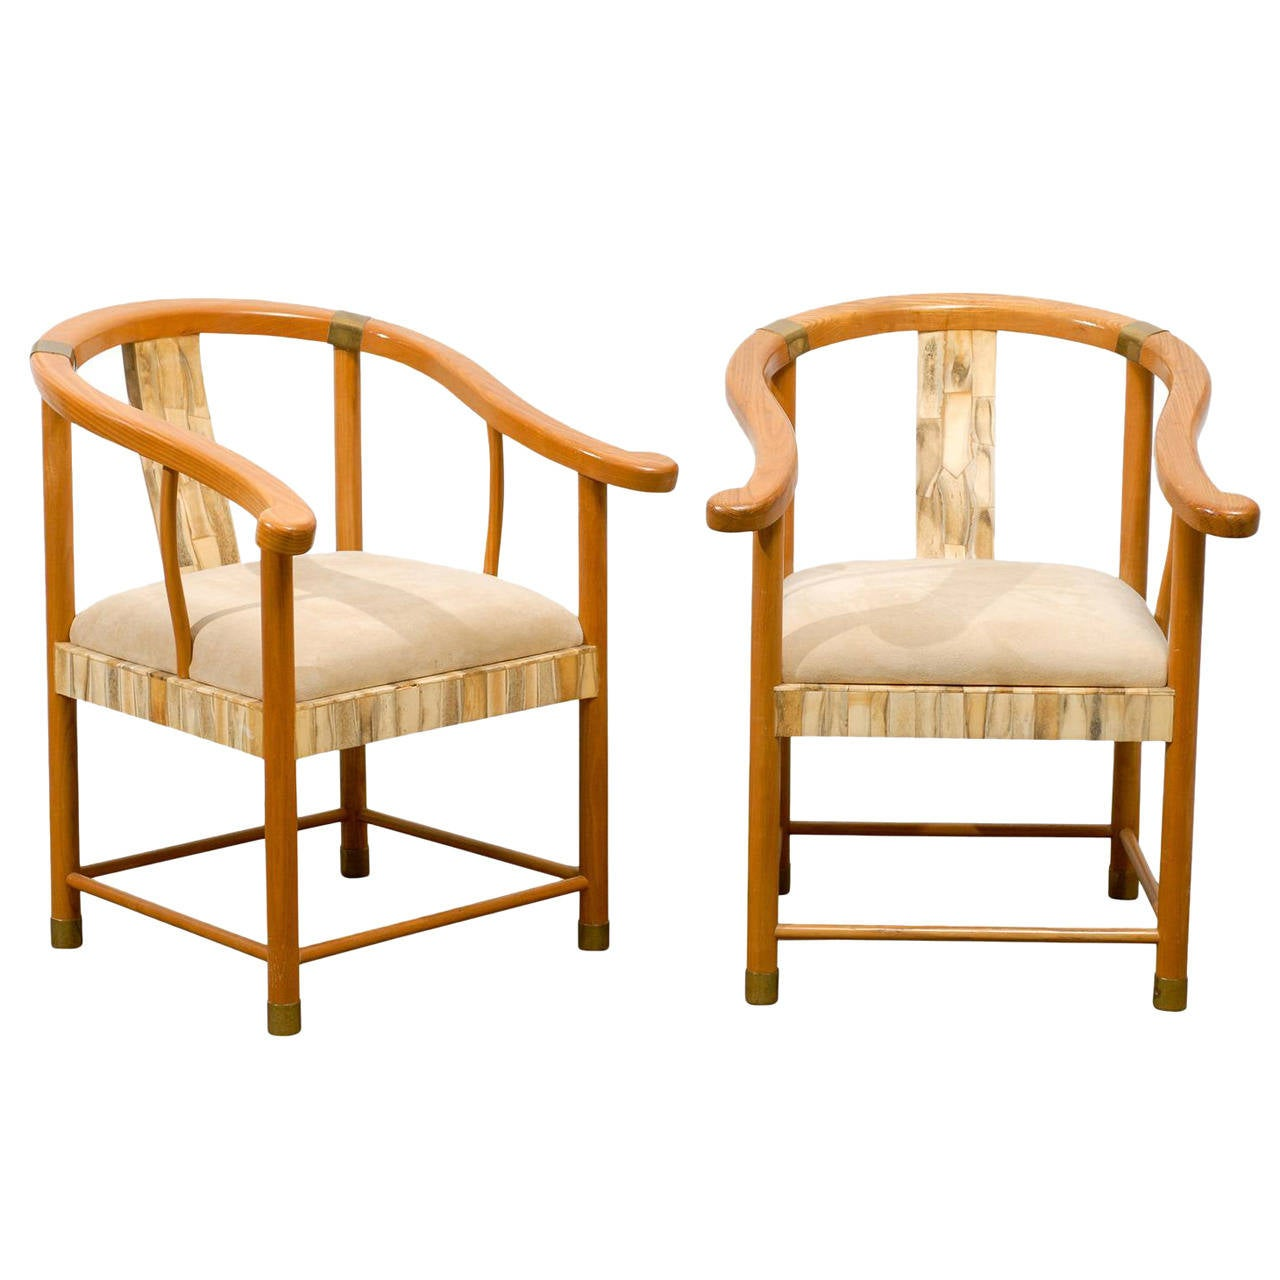 Pair Of Asian Inspired Midcentury Chairs With Bone And Brass Detail For Sale